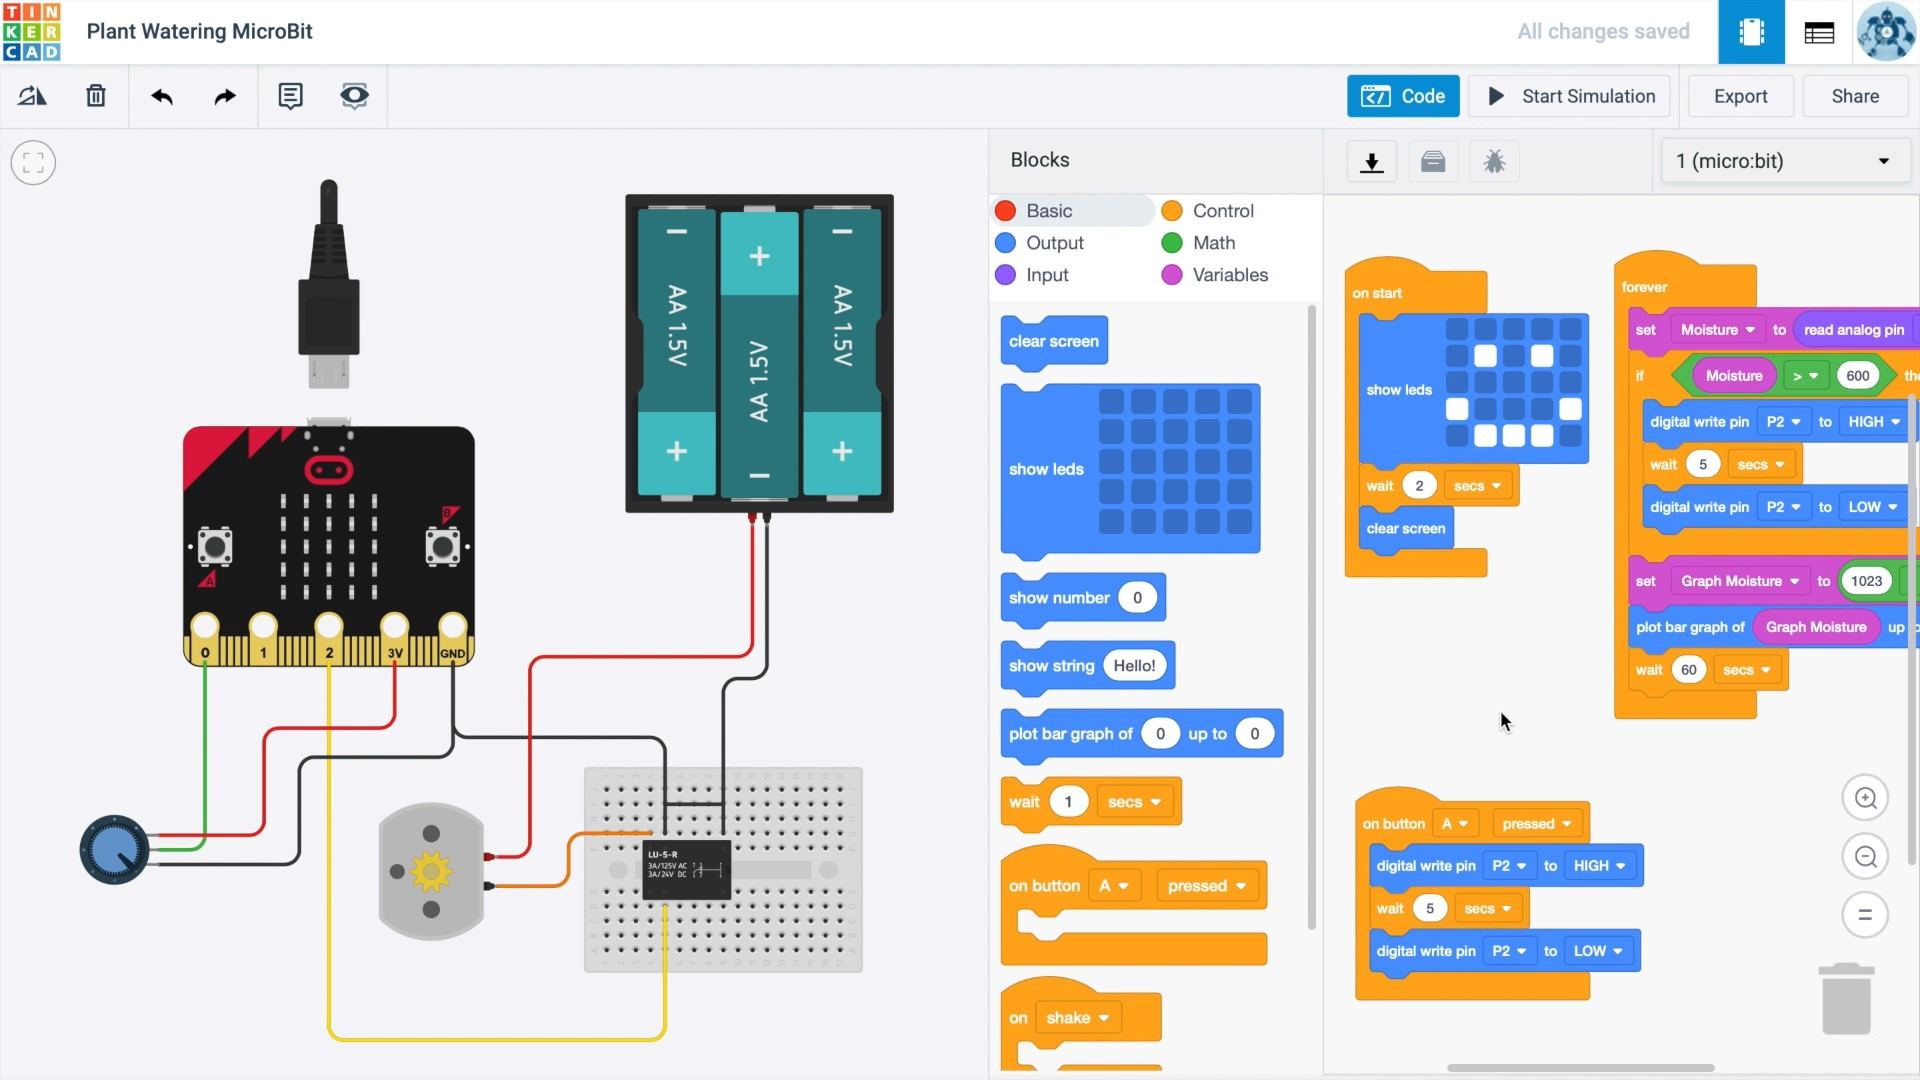 I Designed The Circuit and Code In TinkerCAD